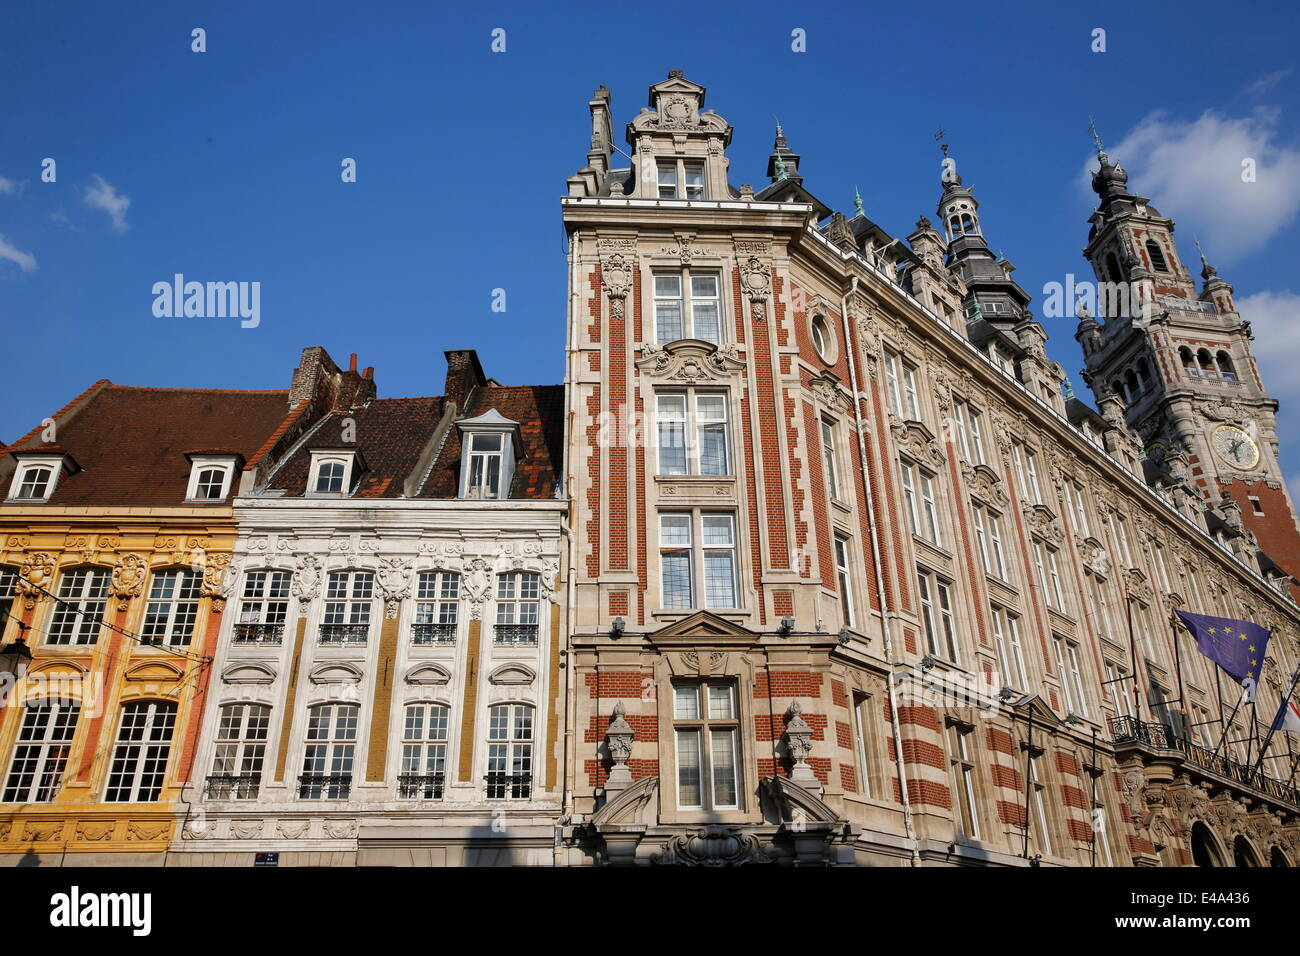 Lille's Chamber of Commerce, Lille, Nord, France, Europe - Stock Image